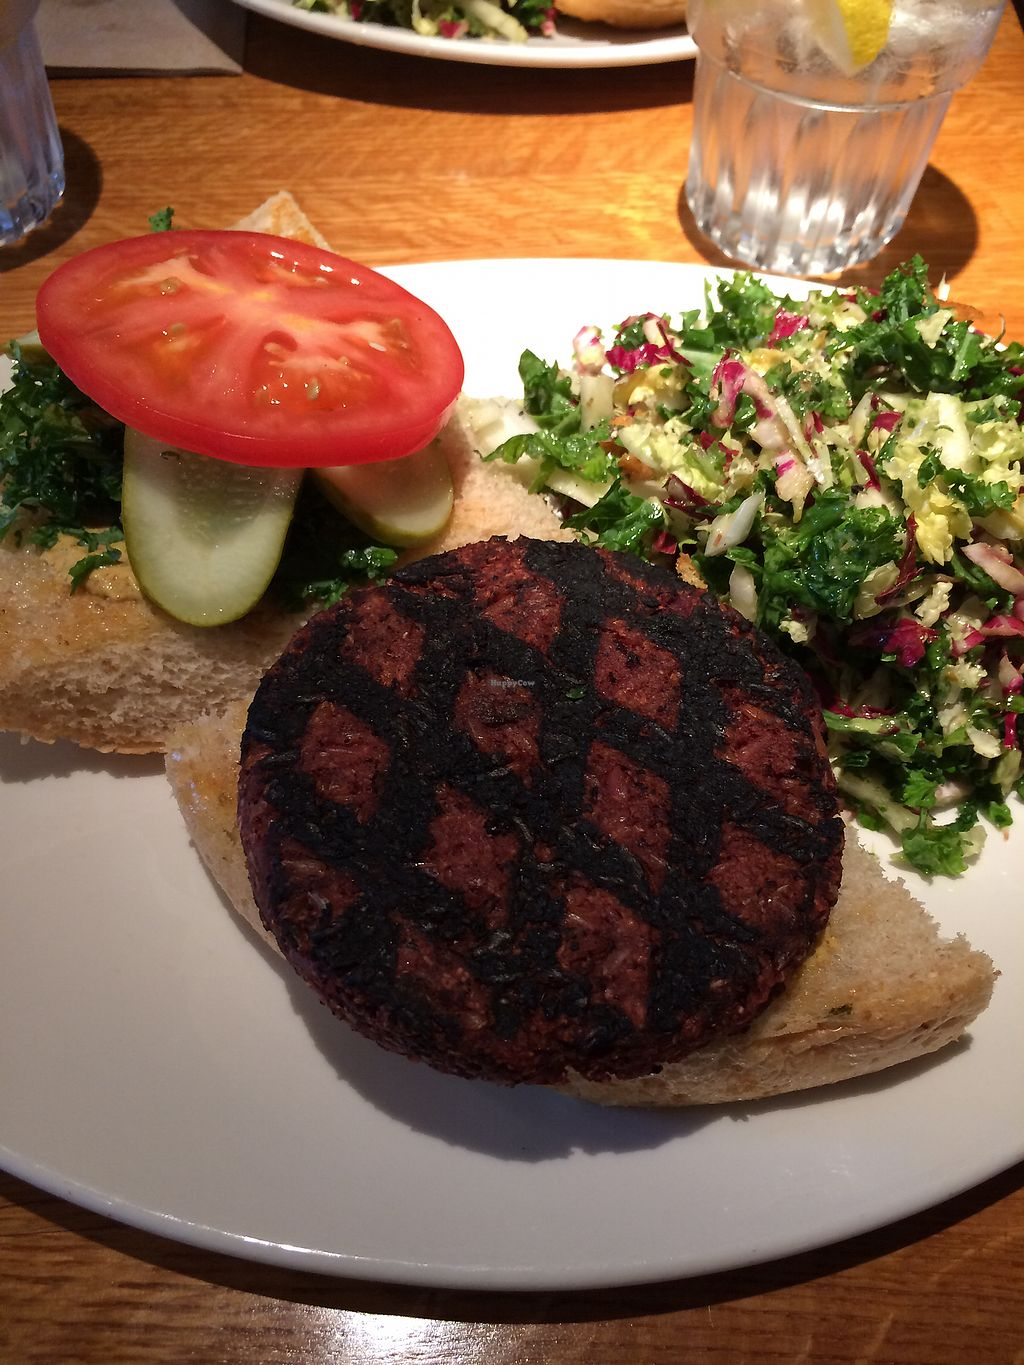 "Photo of Northstar Cafe  by <a href=""/members/profile/vegfoodie91"">vegfoodie91</a> <br/>North Star Burger with simple salad <br/> September 17, 2017  - <a href='/contact/abuse/image/83900/305413'>Report</a>"